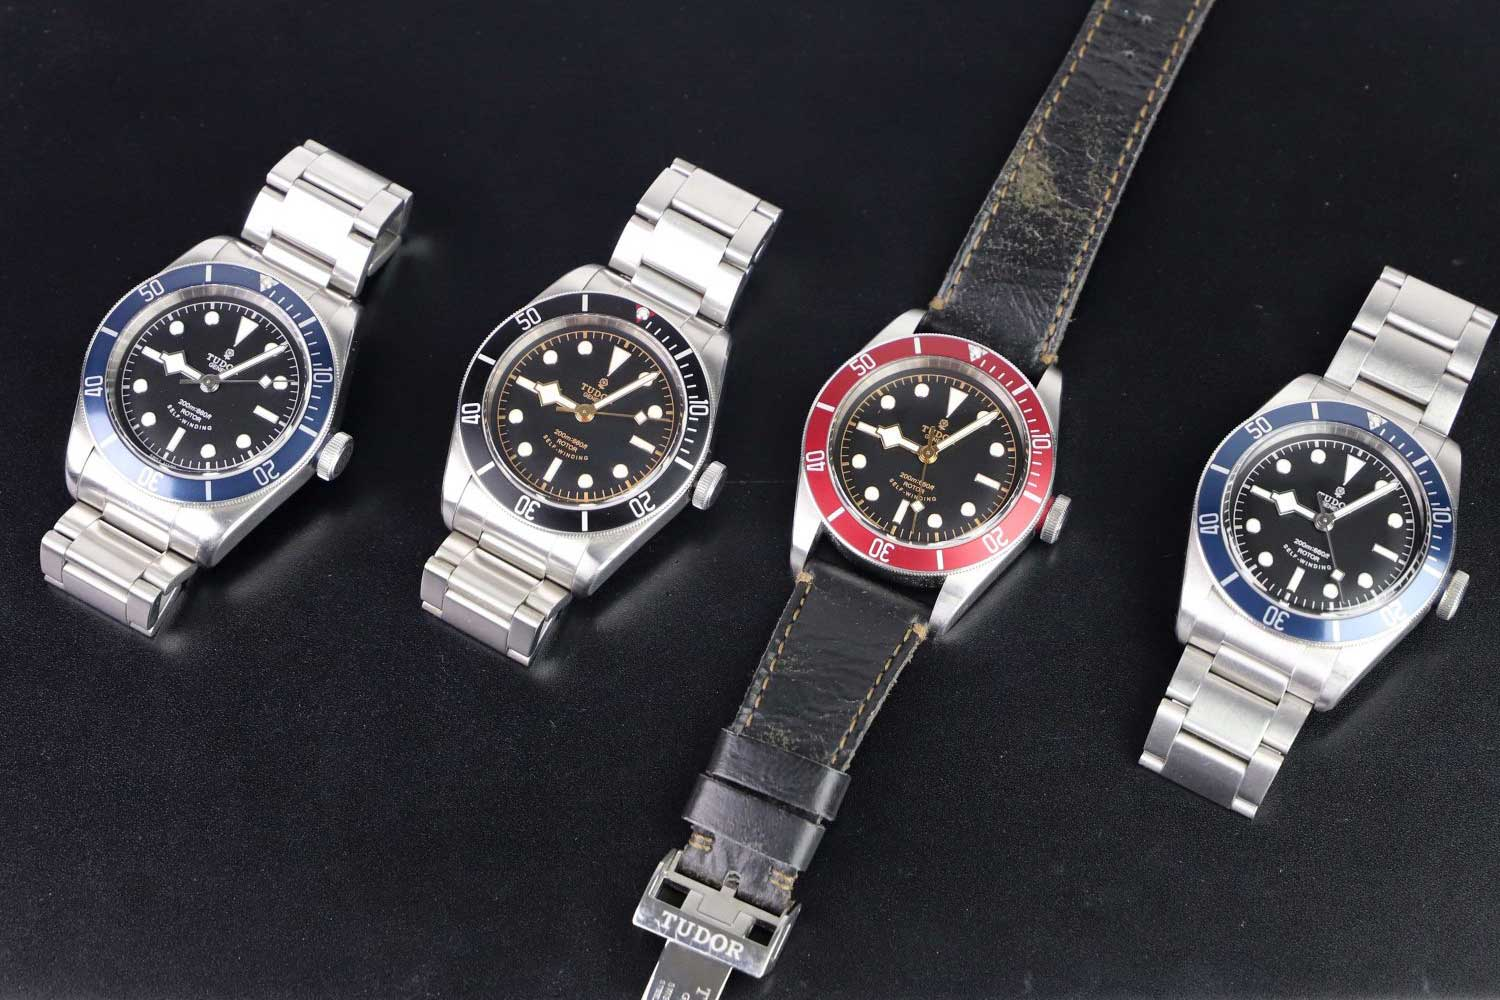 In 2012, Tudor released the Heritage Black Bay based on vintage Tudor Submariners (Image: millenarywatches.com)